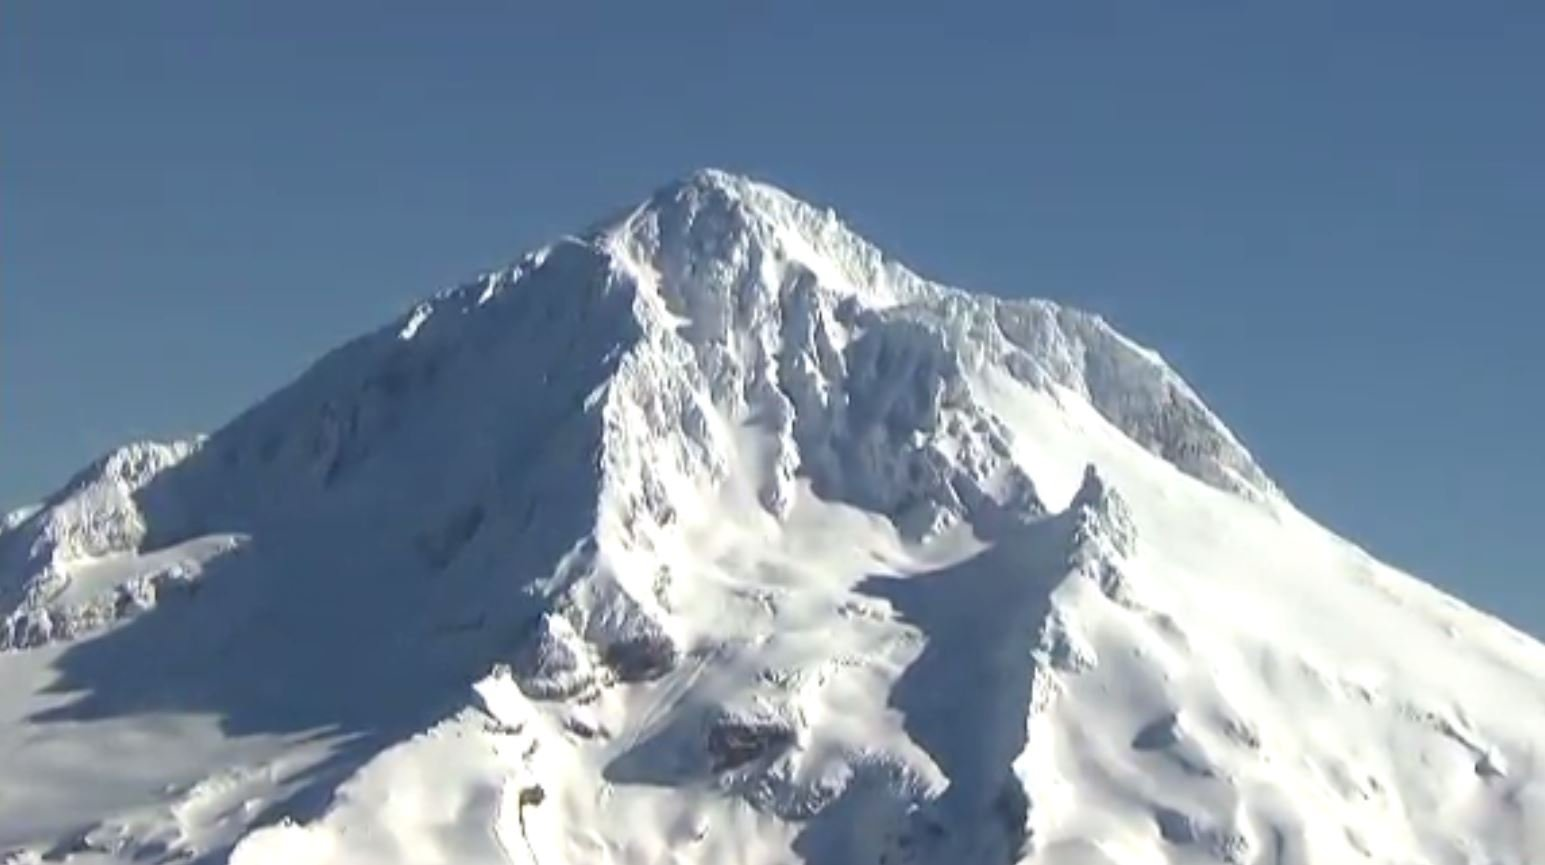 Search and rescue teams responded to climbers in distress Tuesday on Mt. Hood. One climber was pronounced dead at a local hospital. (Source: KPTV/CNN)